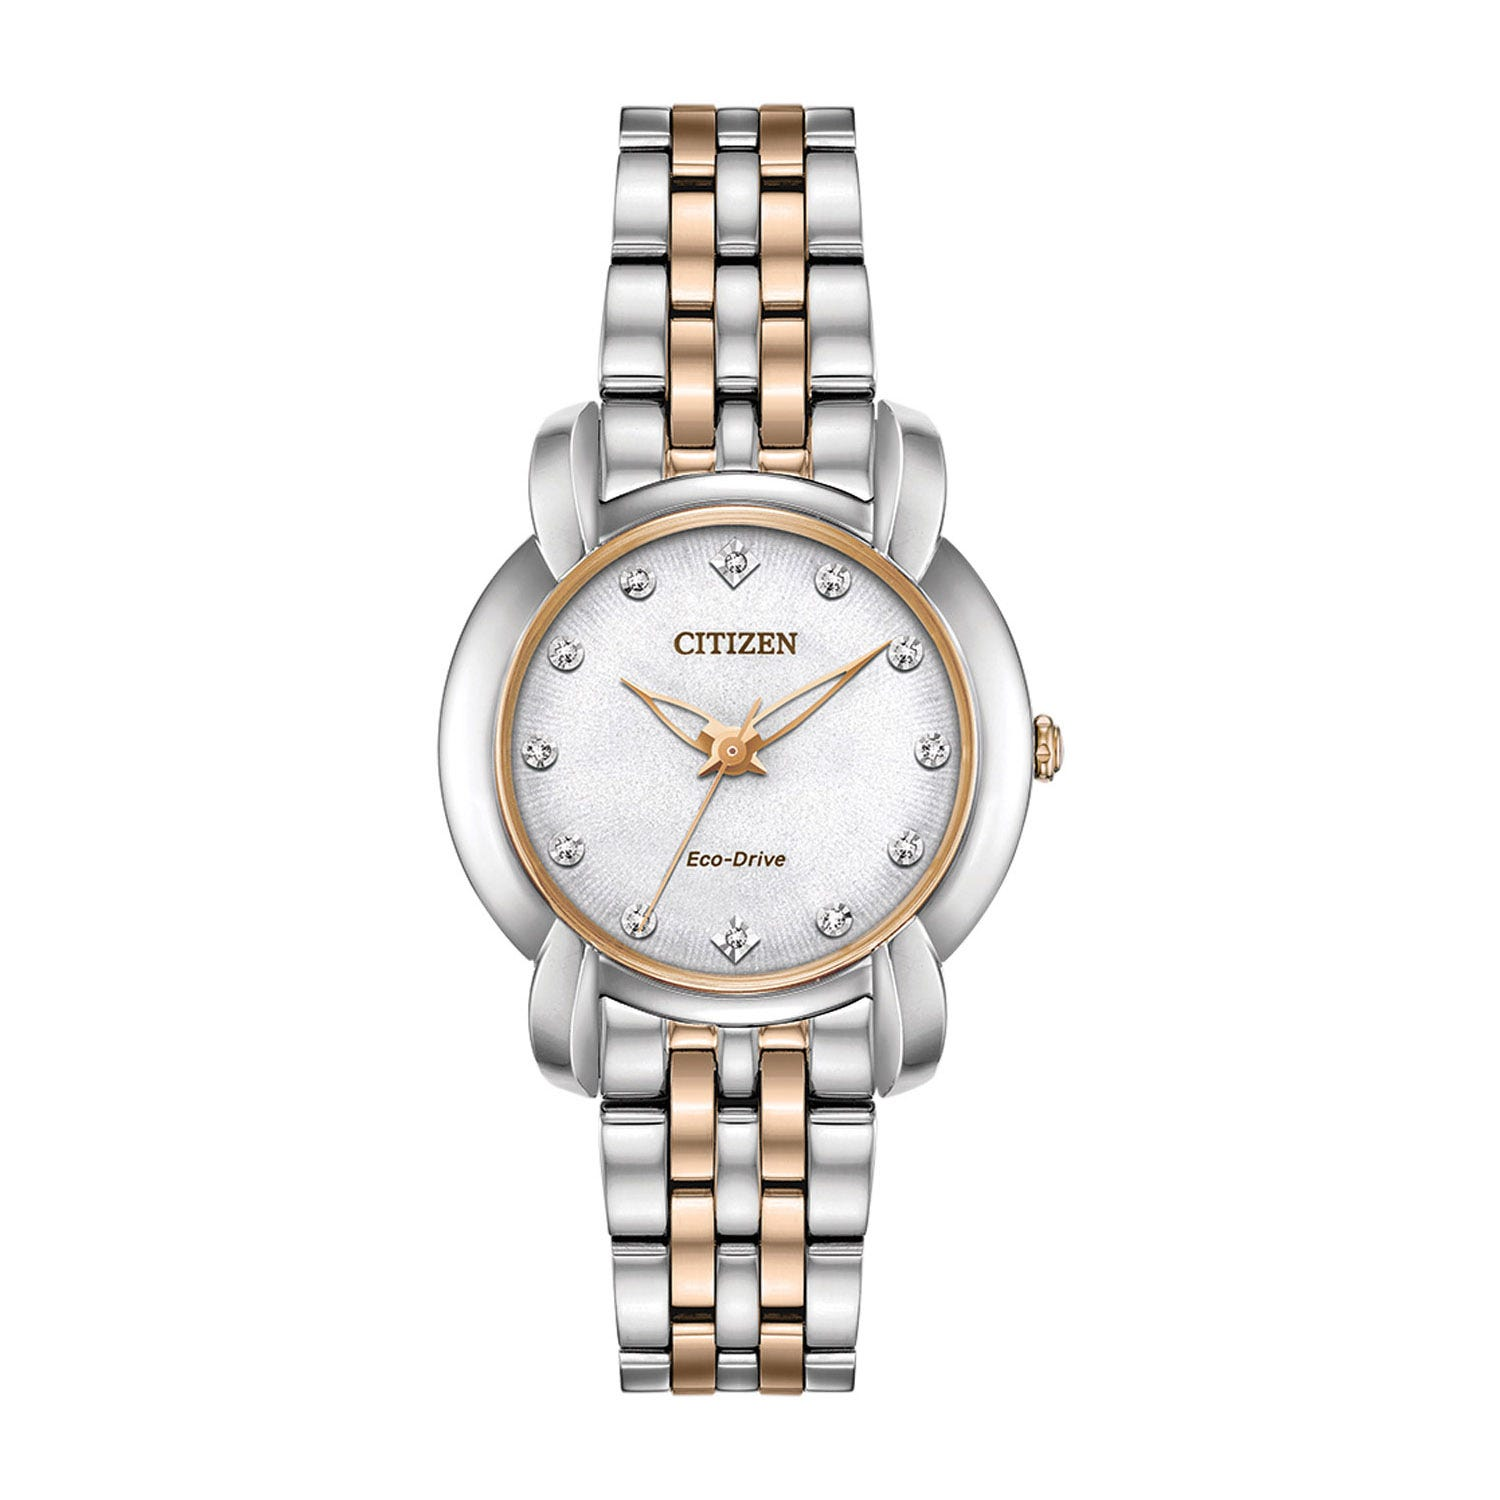 Citizen Eco-Drive Jolie Diamond & Stainless Steel Ladies' Watch